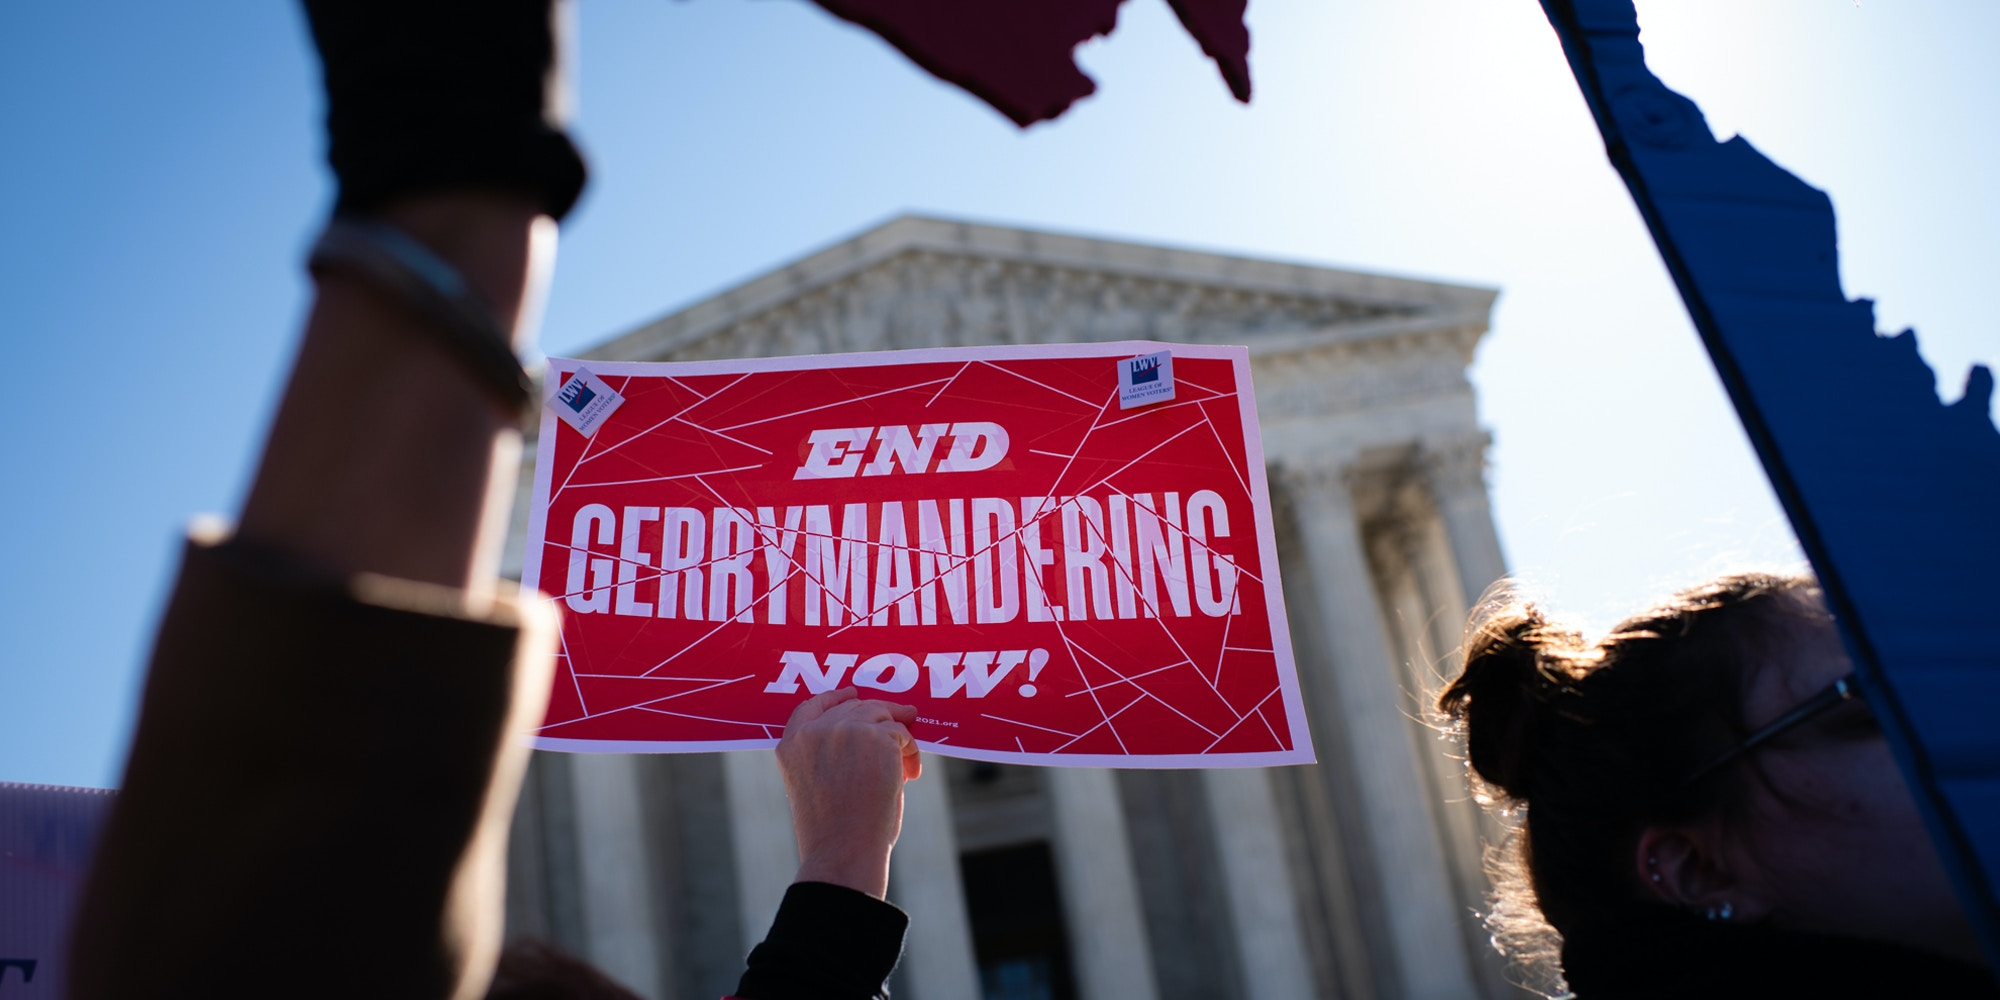 A Fair Maps Rally was held in front of the U.S. Supreme Court on Tuesday, March 26, 2019 in Washington, DC.